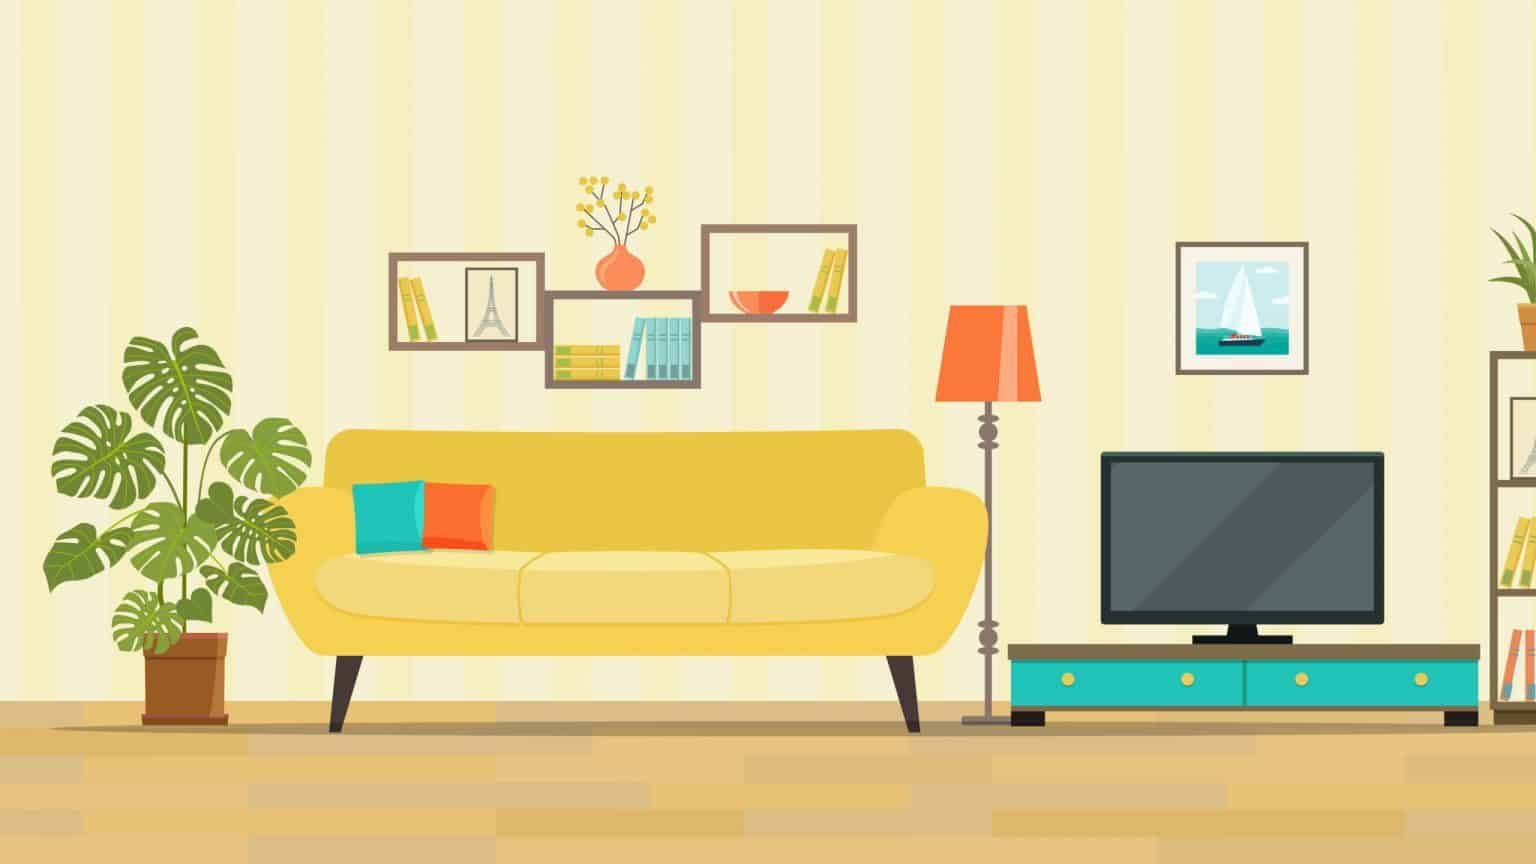 Benefits Of Minimalism 7 Simple Ways Decluttering Has Changed My Life Living Room Clipart Living Room Interior Shelving Units Living Room